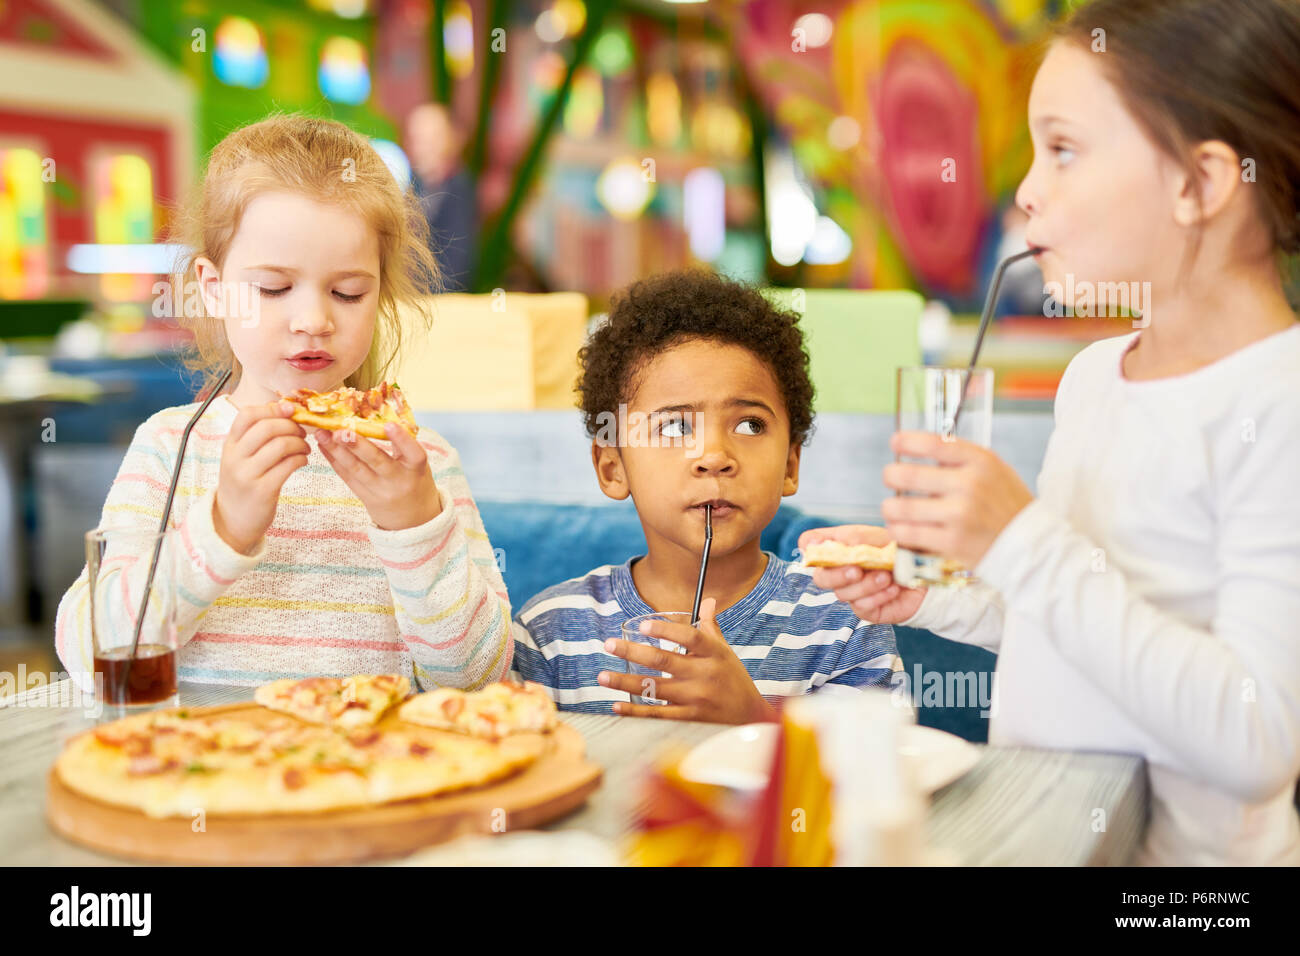 Cute Kids in Cafe - Stock Image